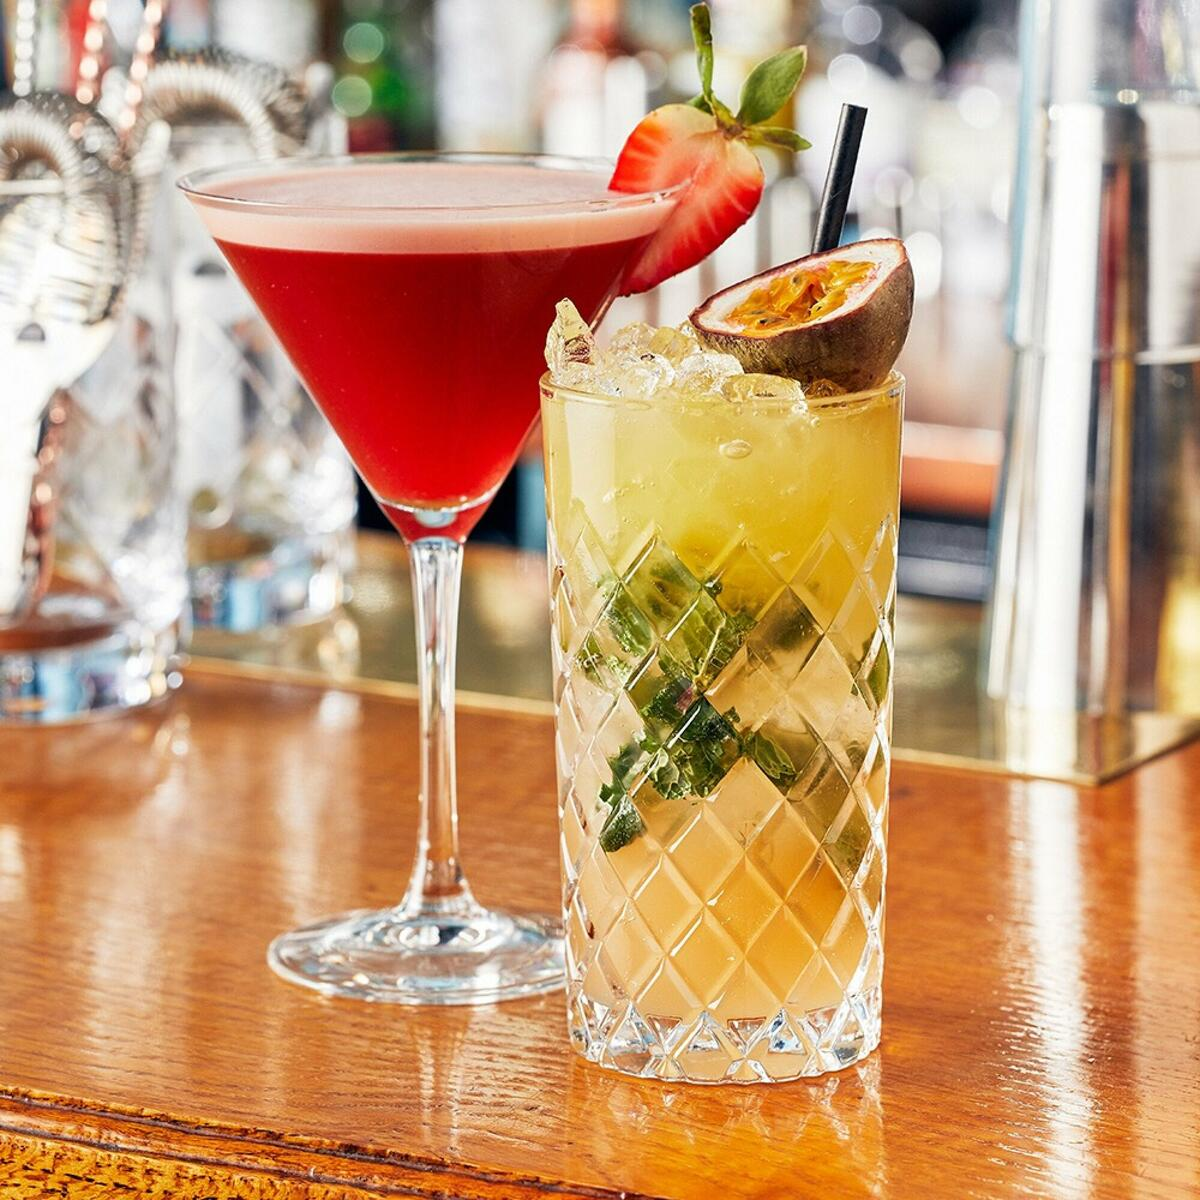 Enjoy exceptionally crafted cocktails